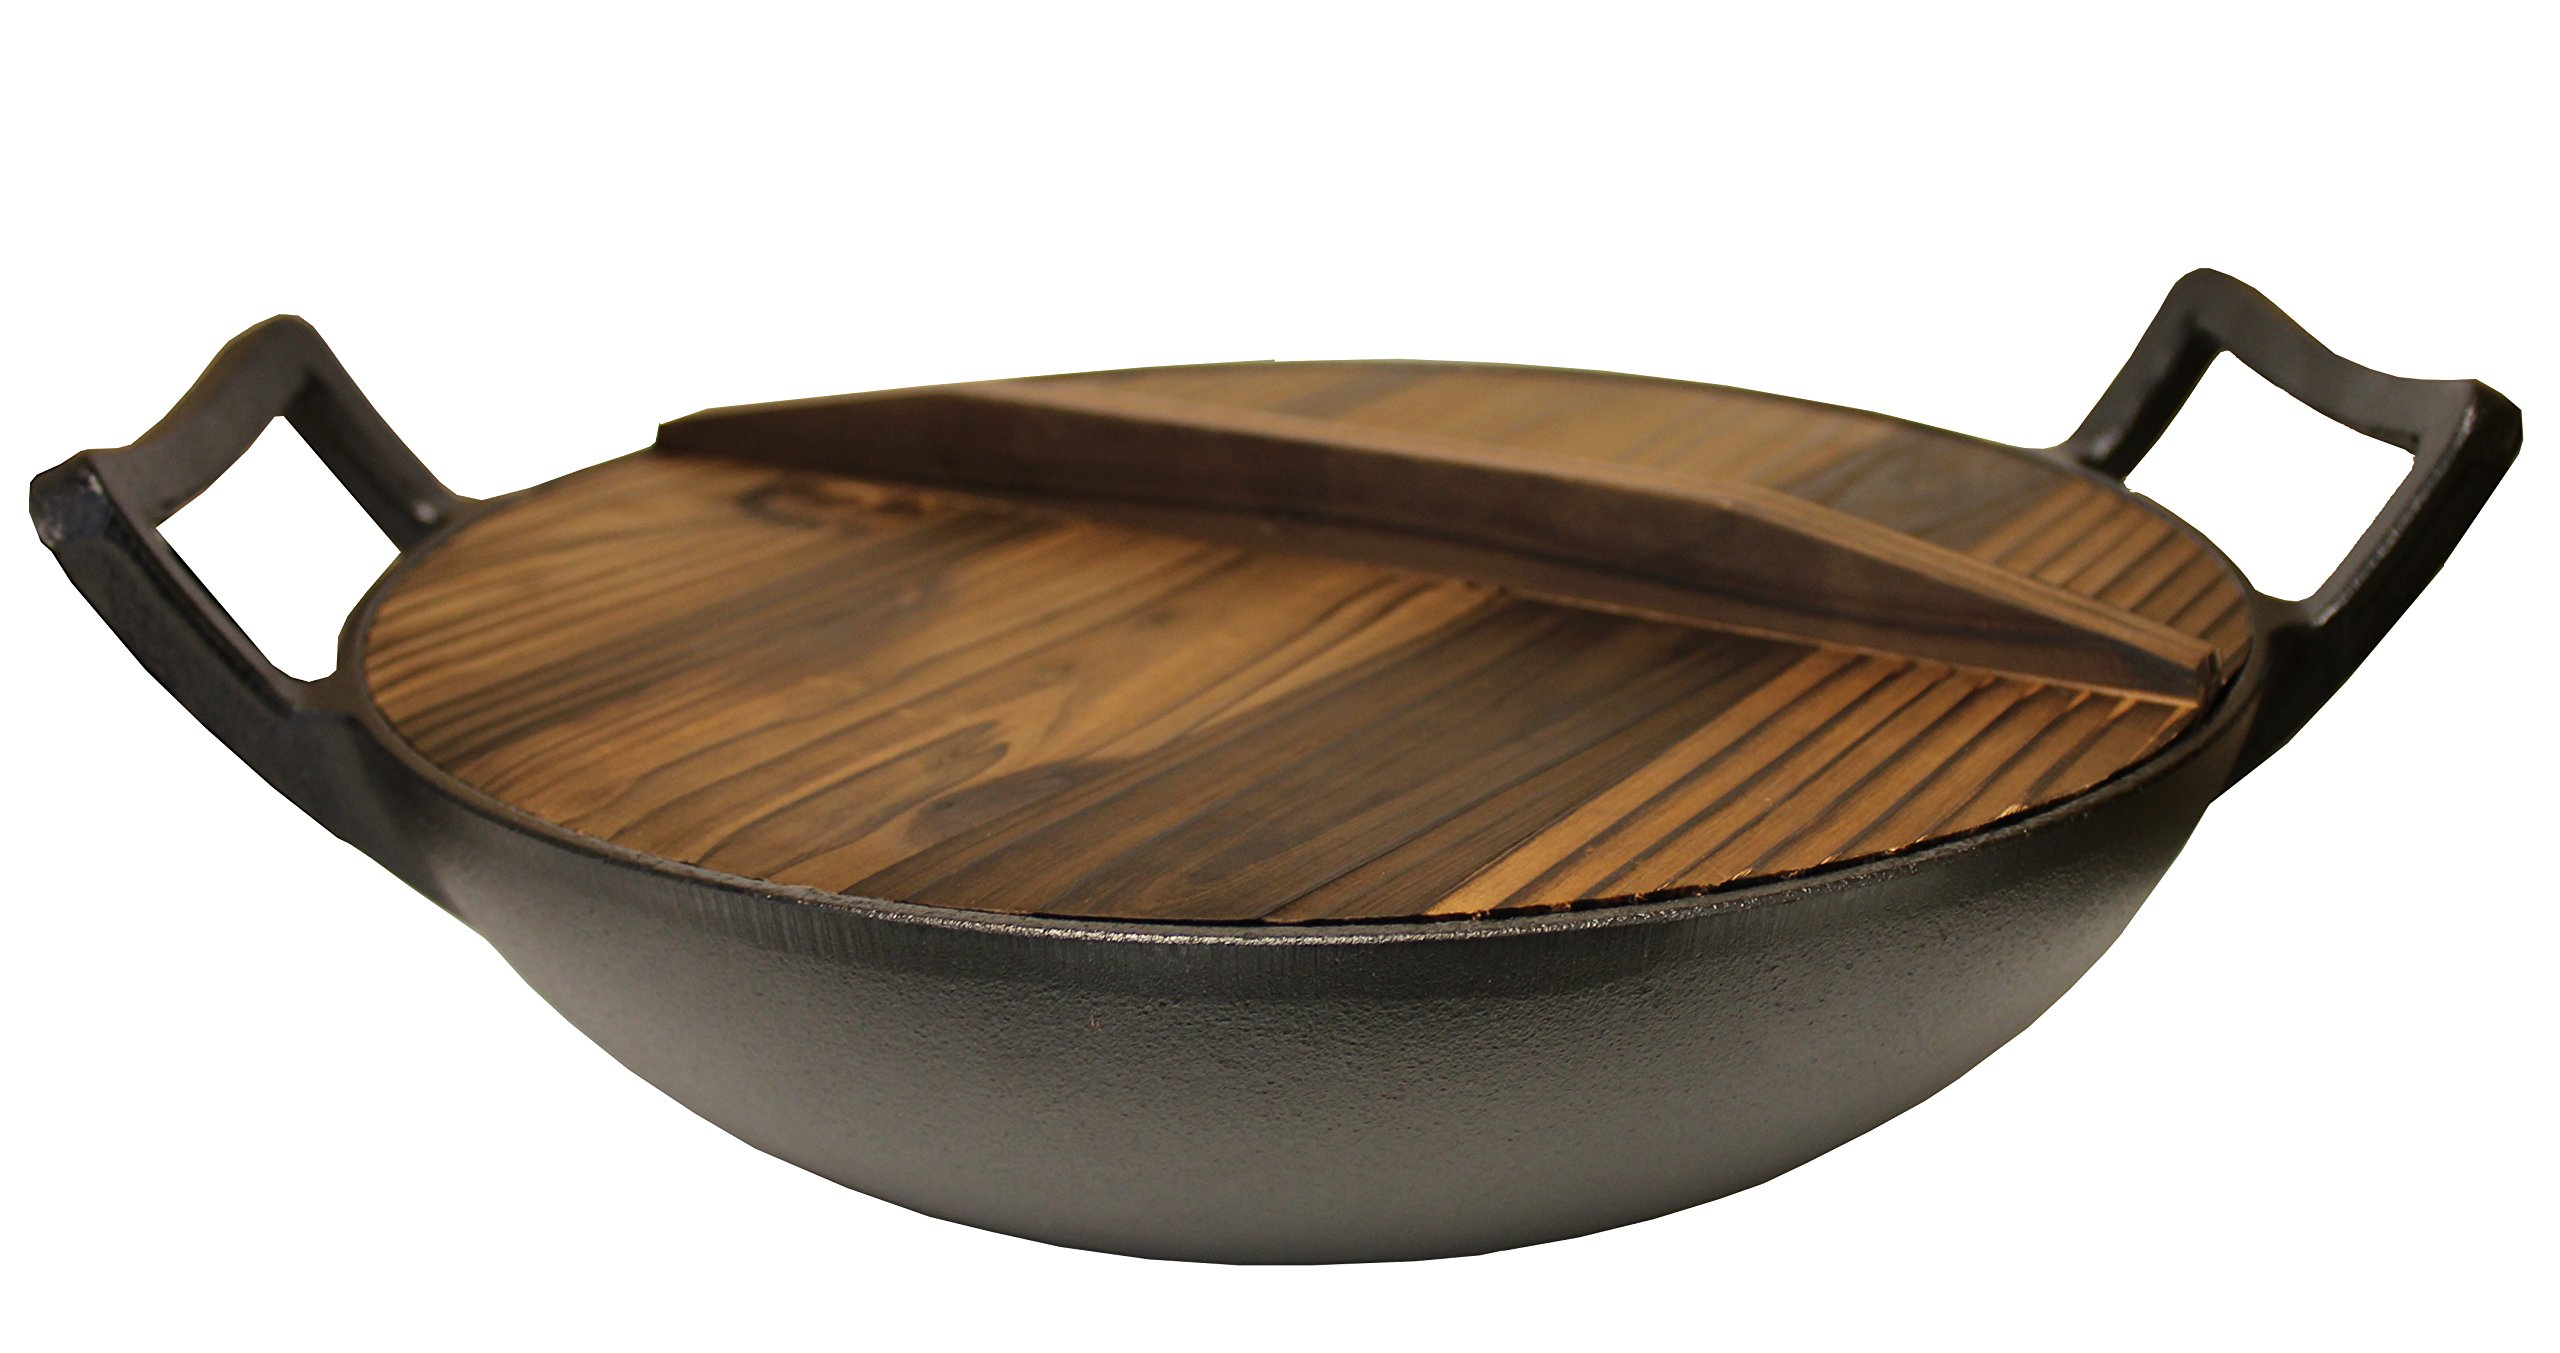 Kasian House Cast Iron Wok with Wooden Lid 12'' Diameter and Large Handle | Stir Fry Pan